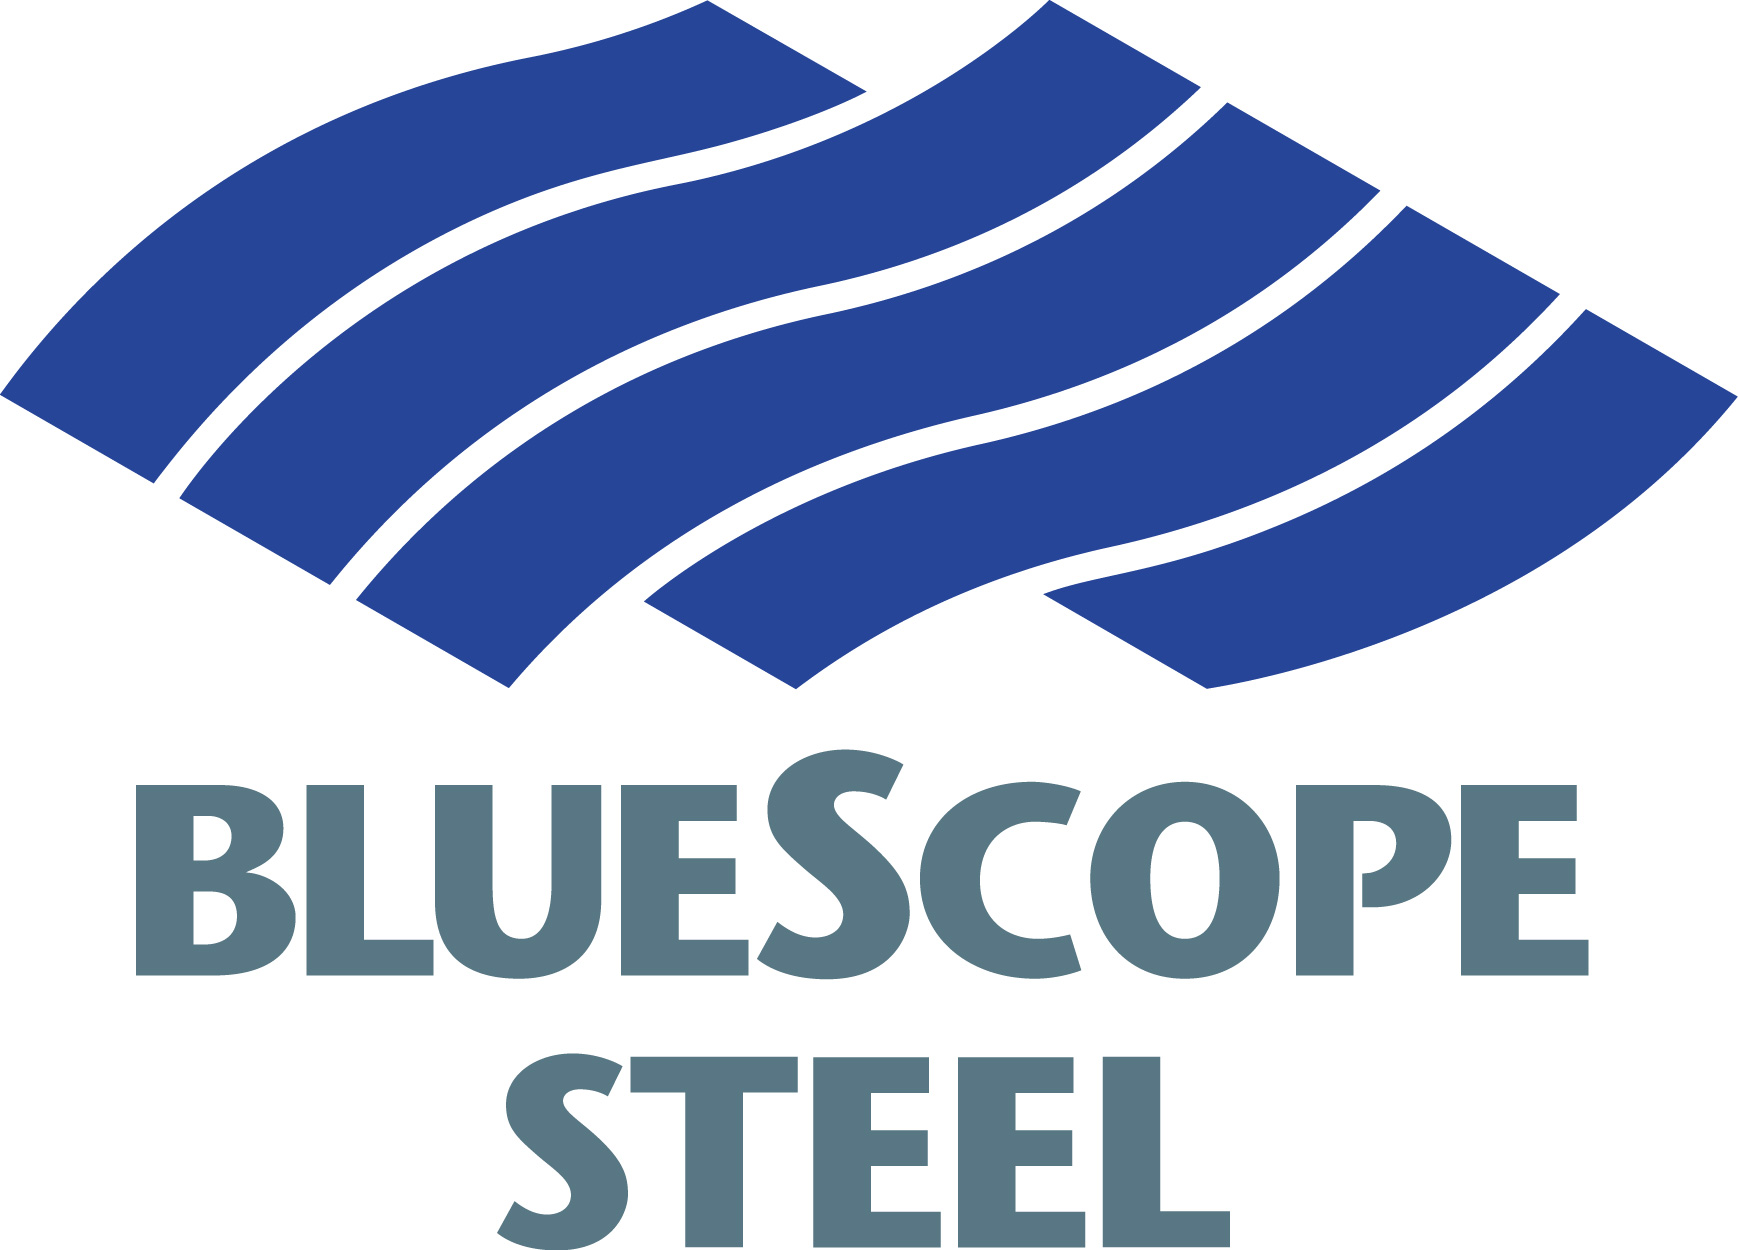 bluescope-steel-logo-1494900730